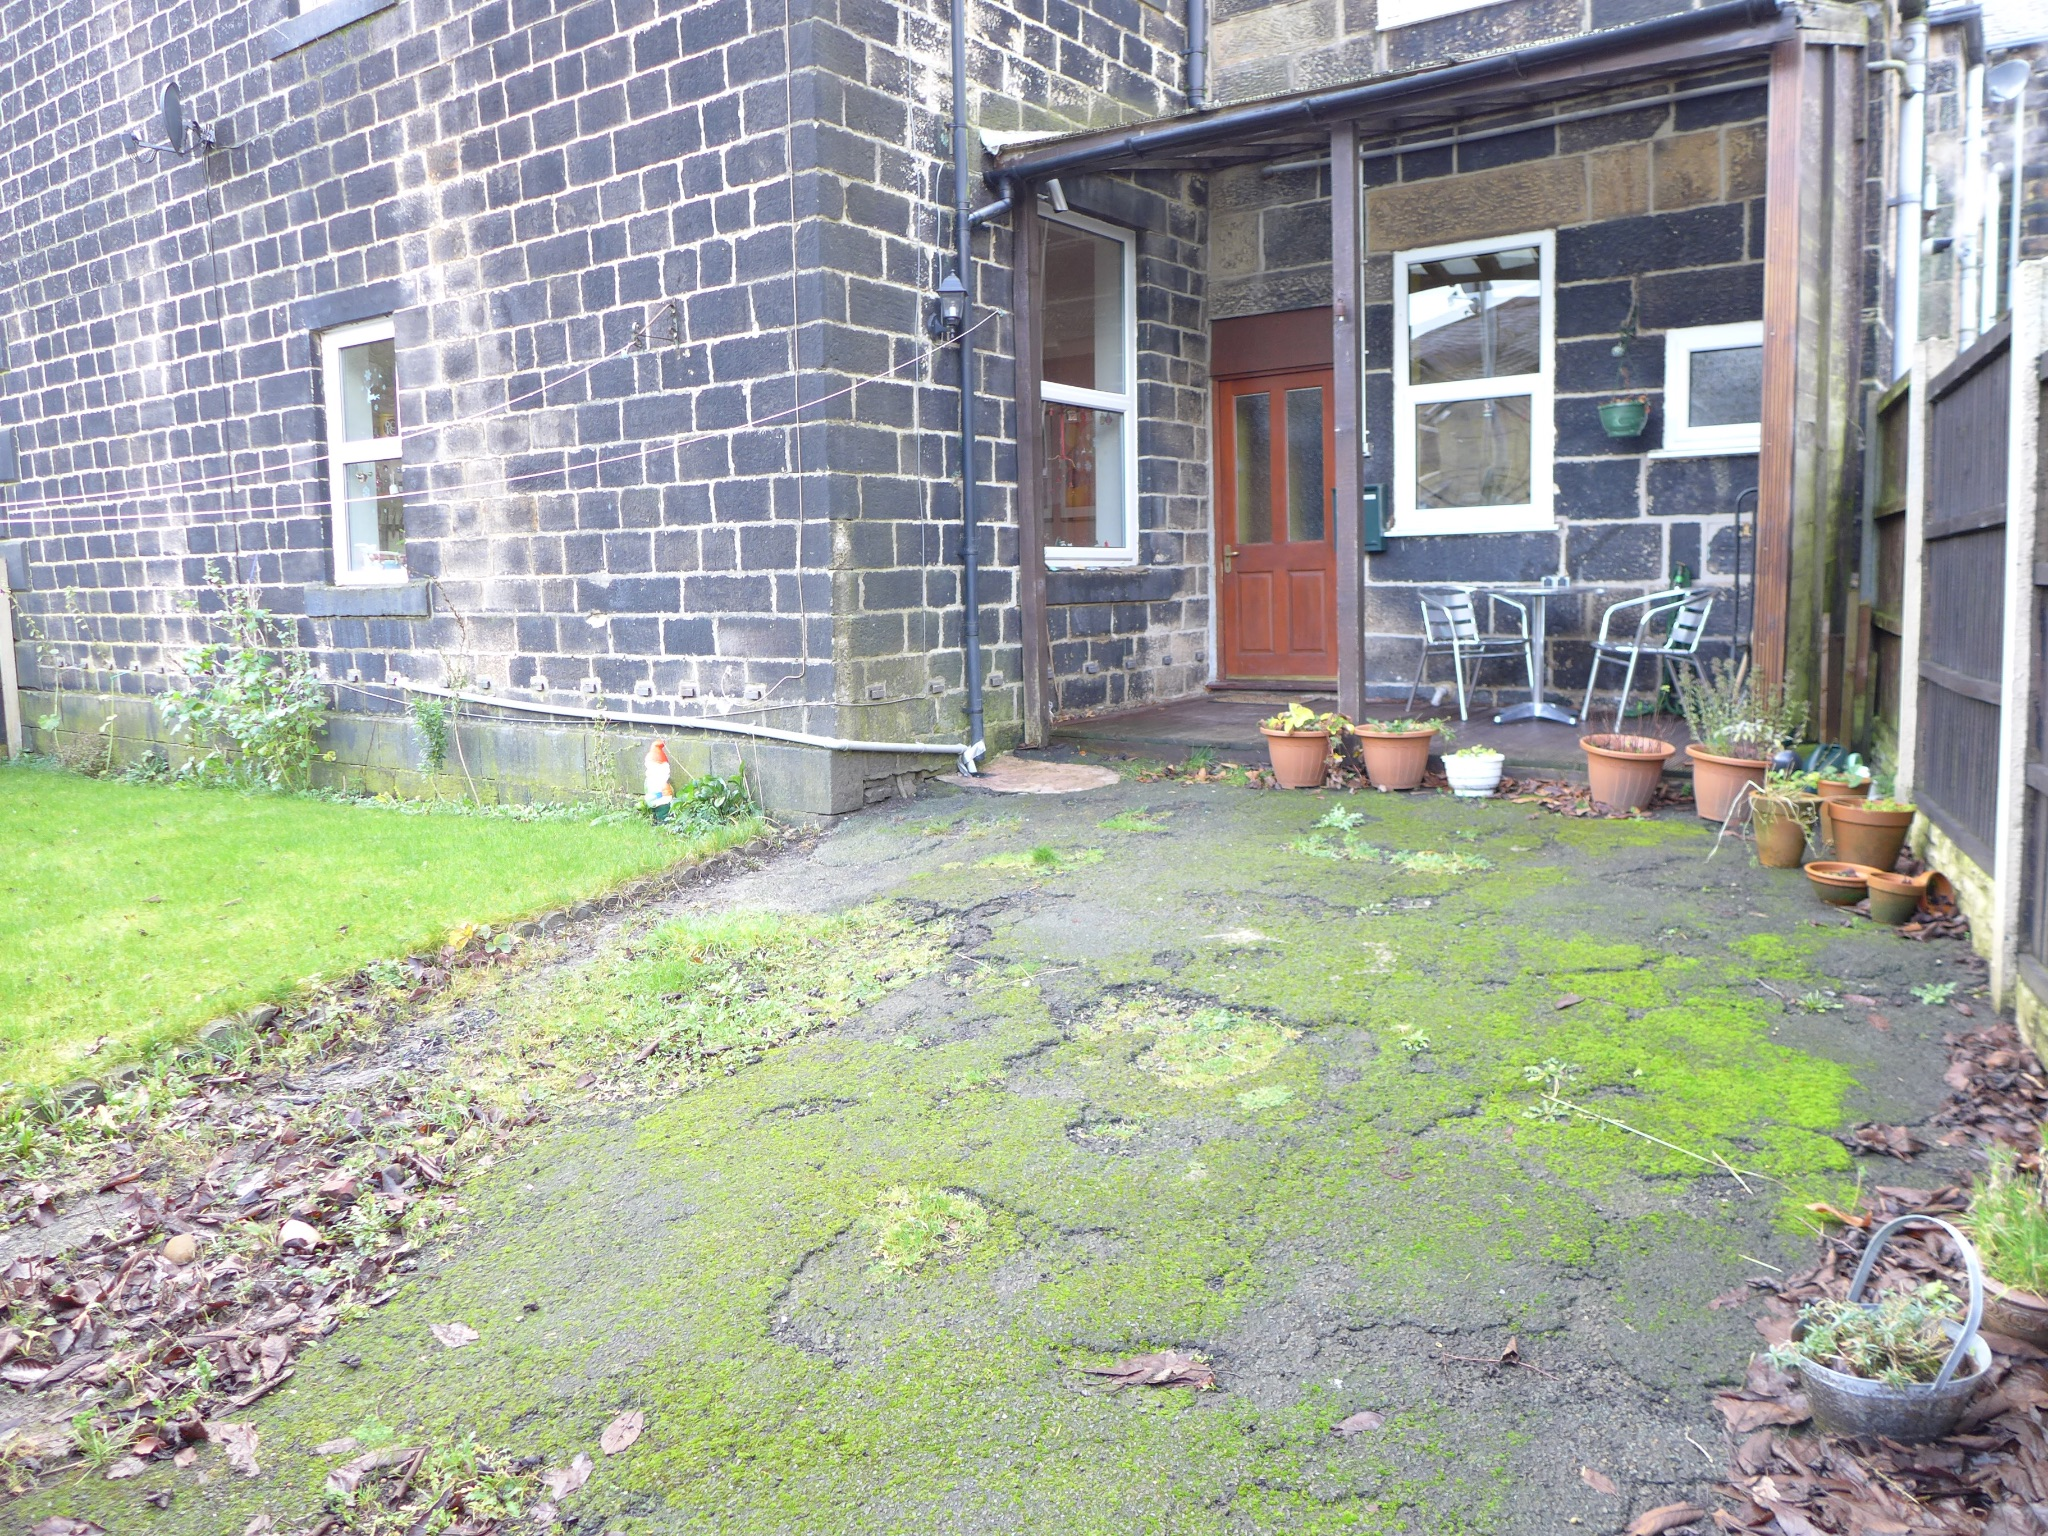 4 bedroom end terraced house For Sale in Calderdale - Photograph 23.